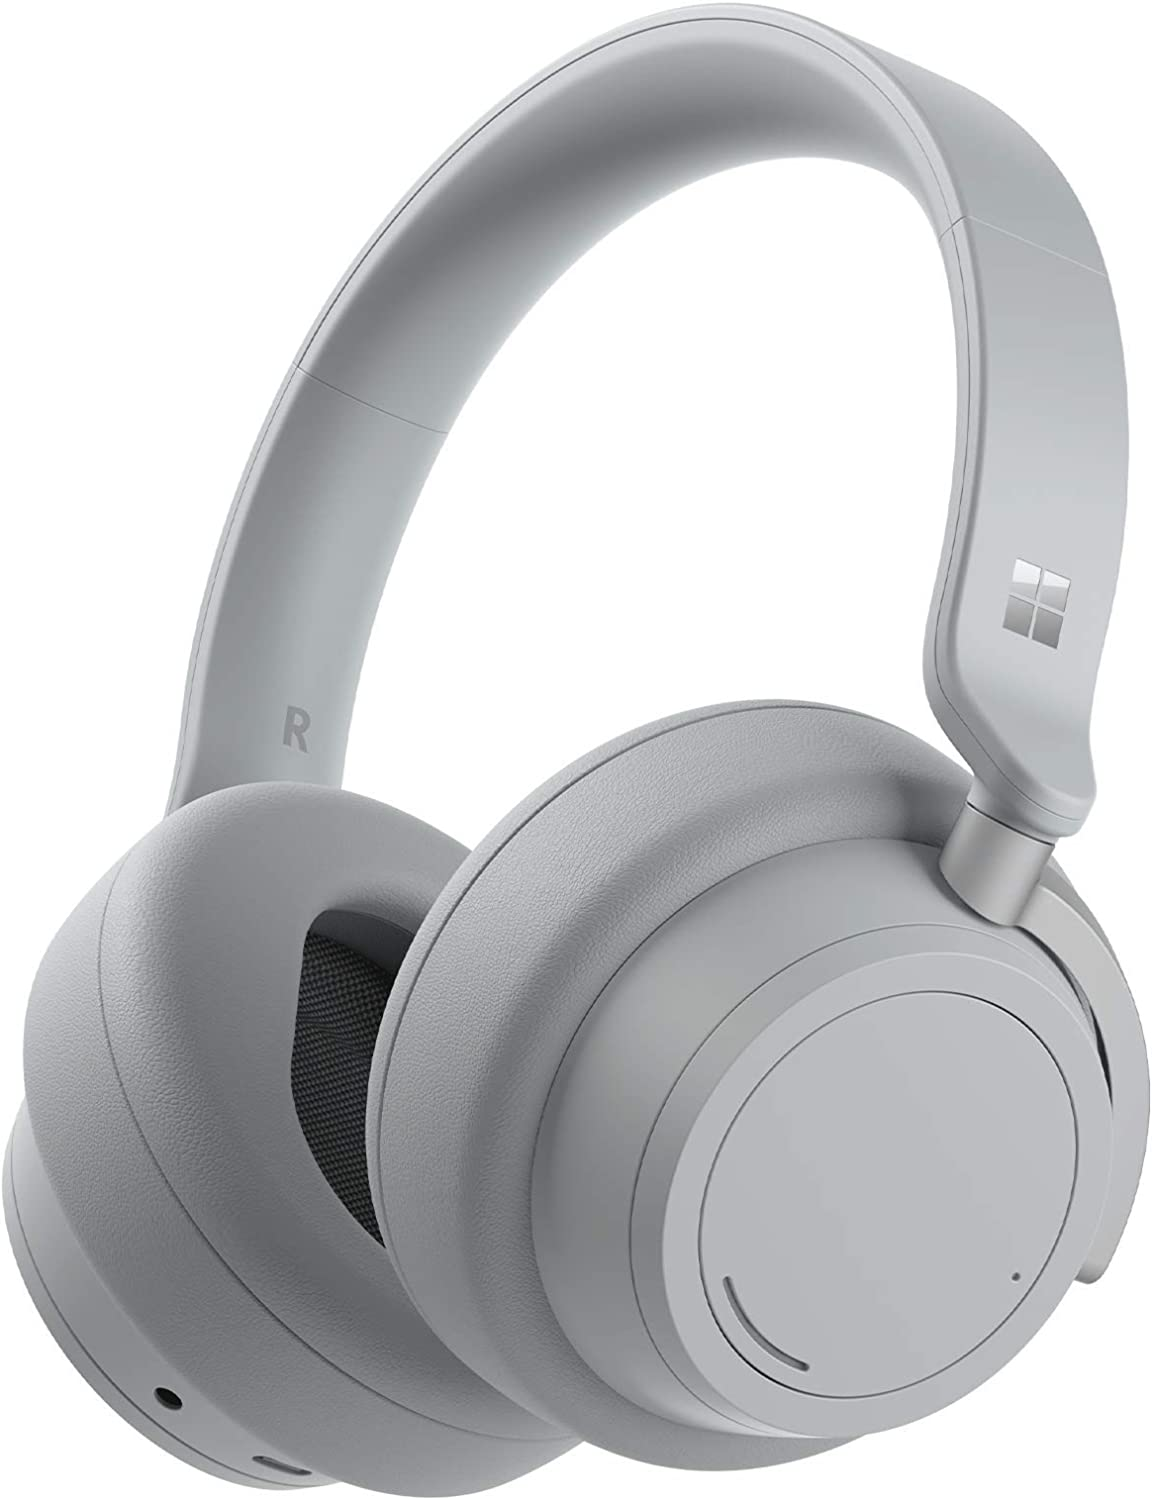 Microsoft Surface - Auriculares Gris Universal